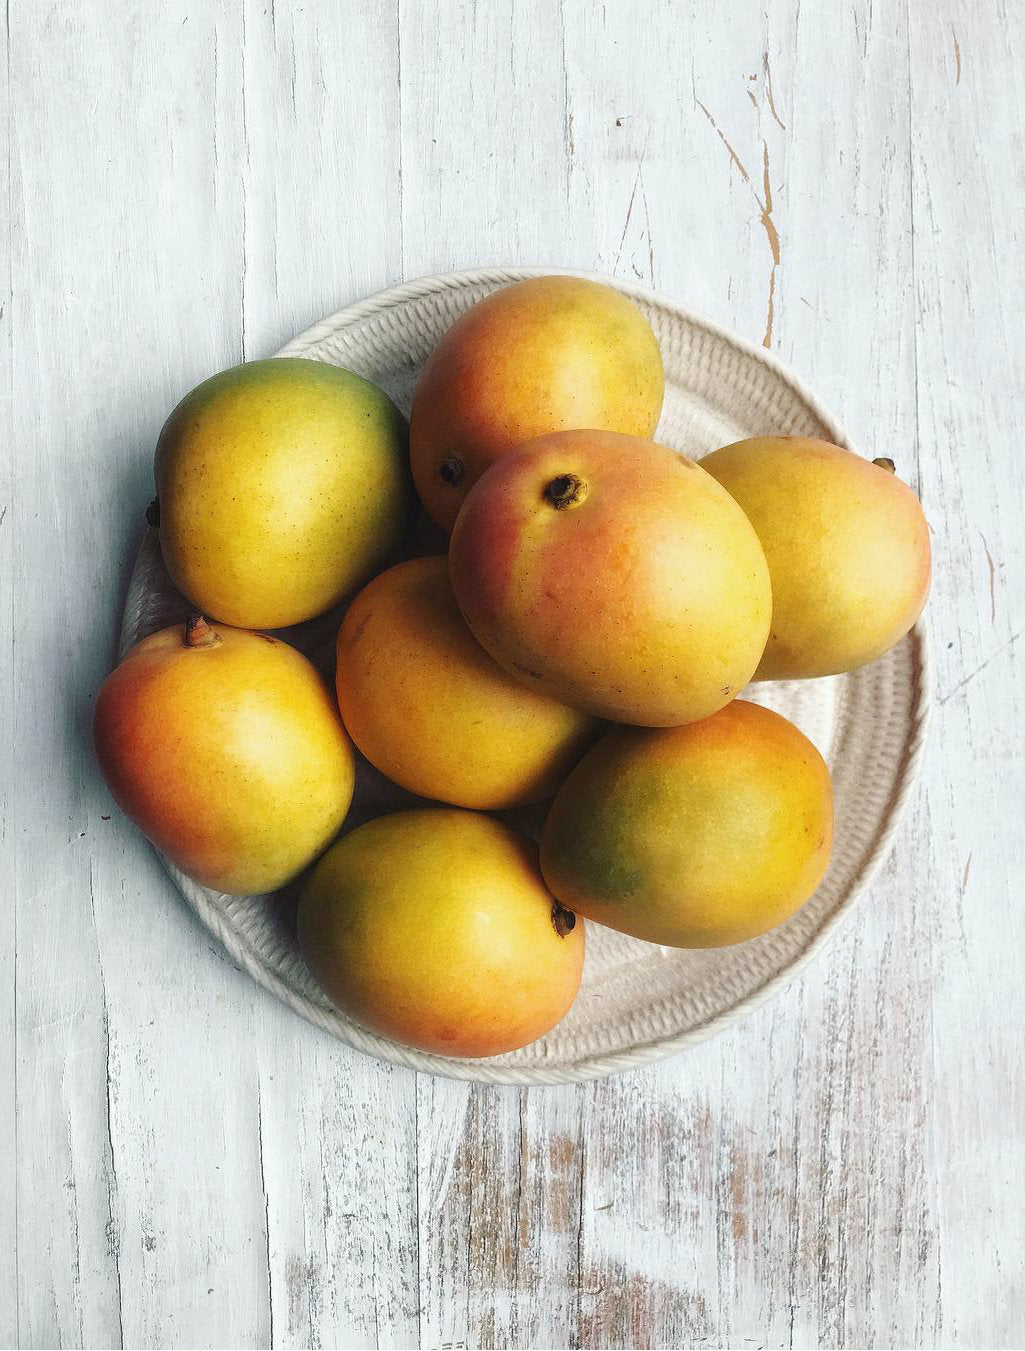 katherine mangoes - pick of the week